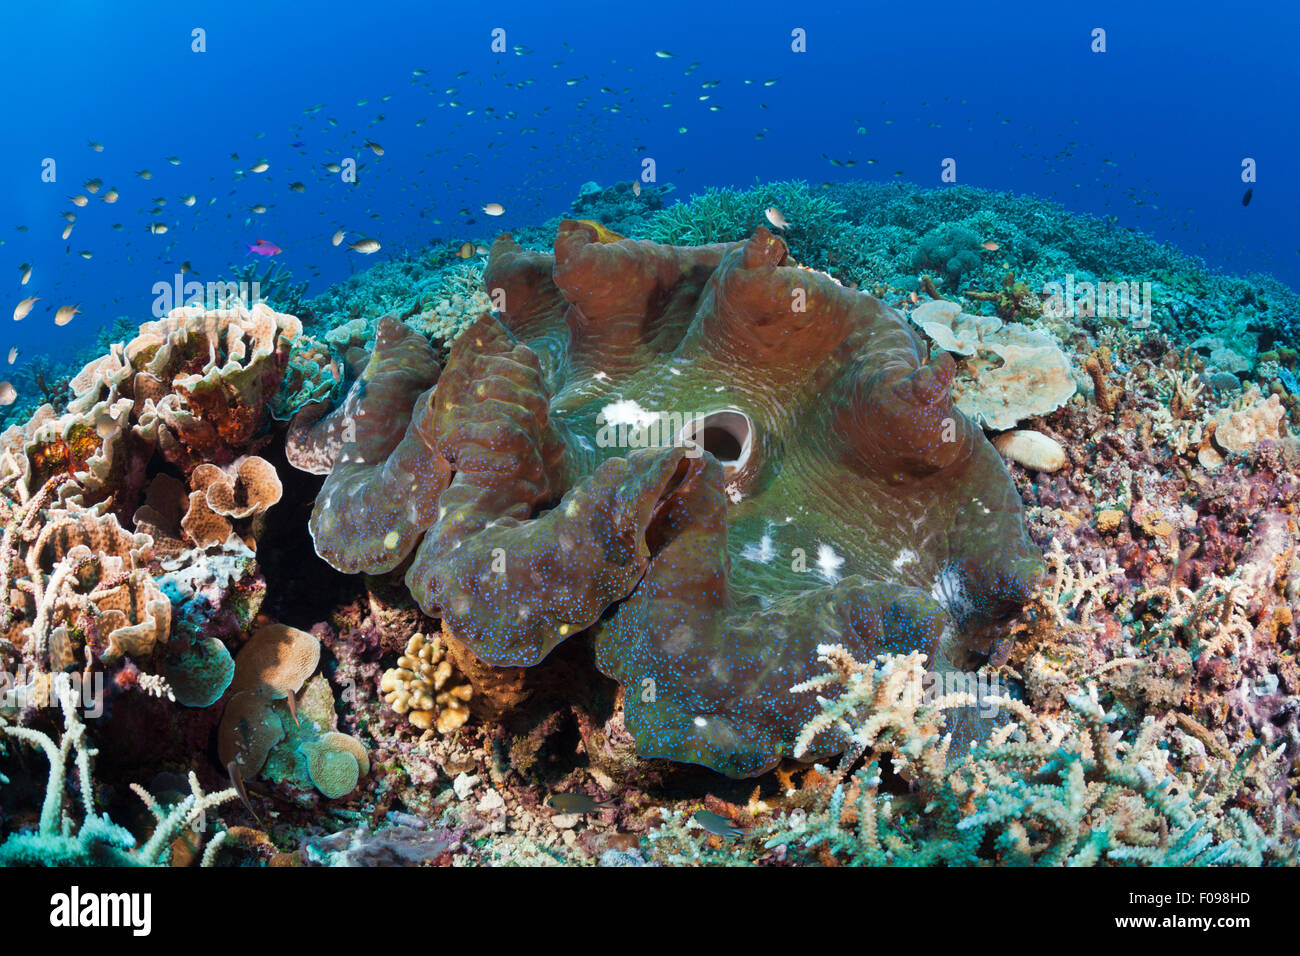 Giant Clam in Coral Reef, Tridacna squamosa, Mary Island, Solomon Islands Stock Photo